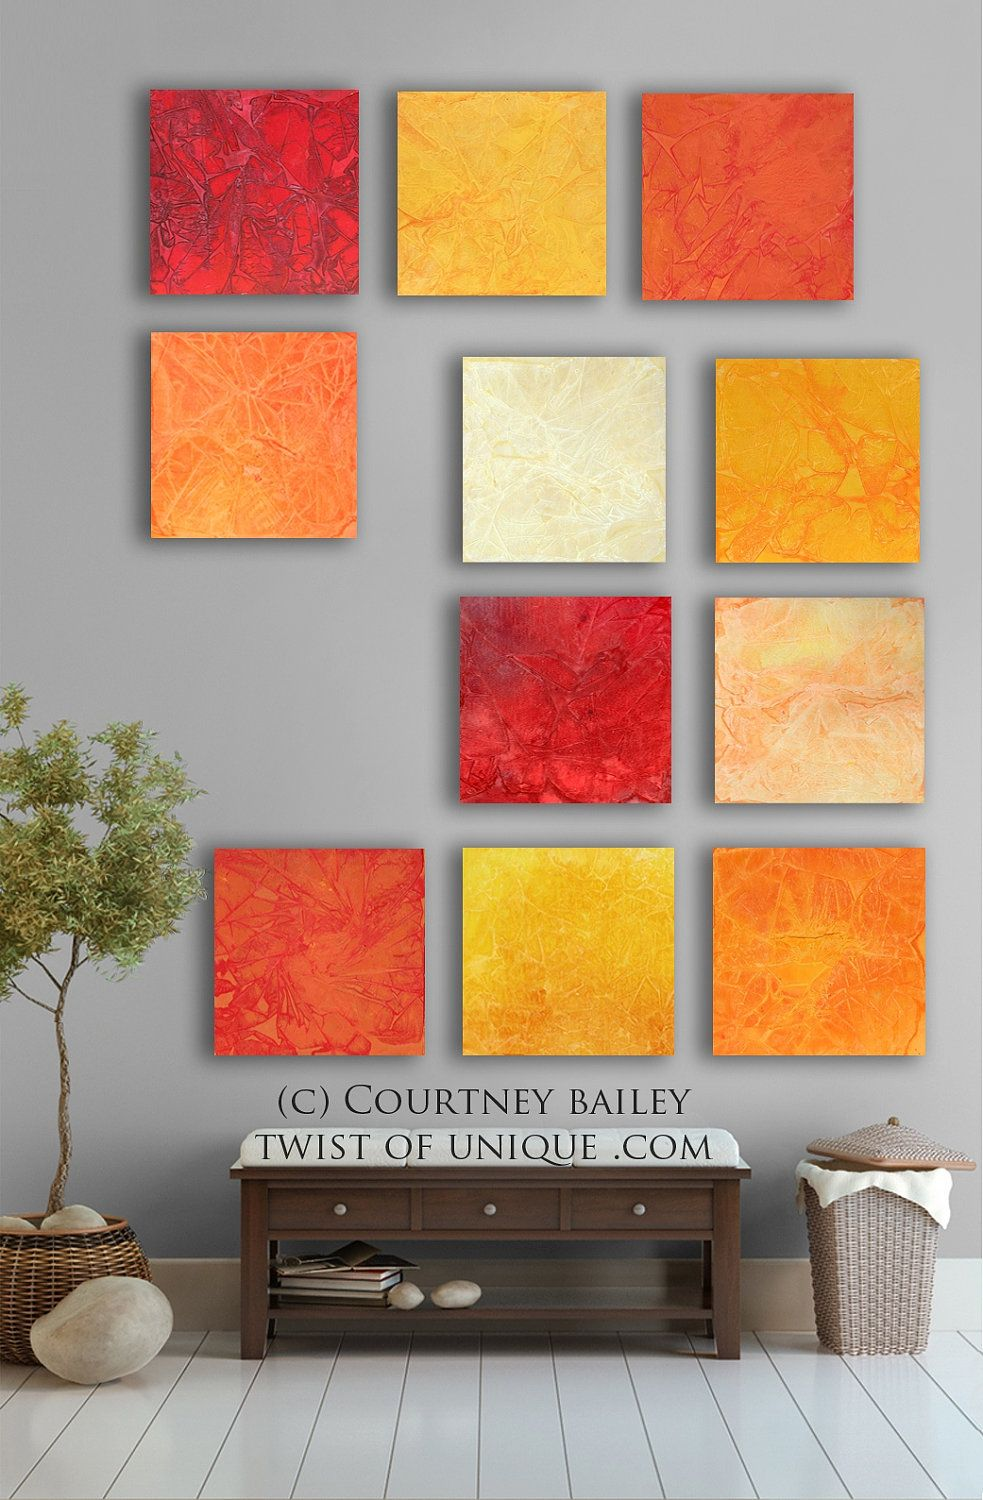 Bright Abstract Art 11 Square Custom Abstract Wall Art Large Abstract Painting Red Orange Yell Bright Abstract Art Abstract Wall Art Abstract Art Painting